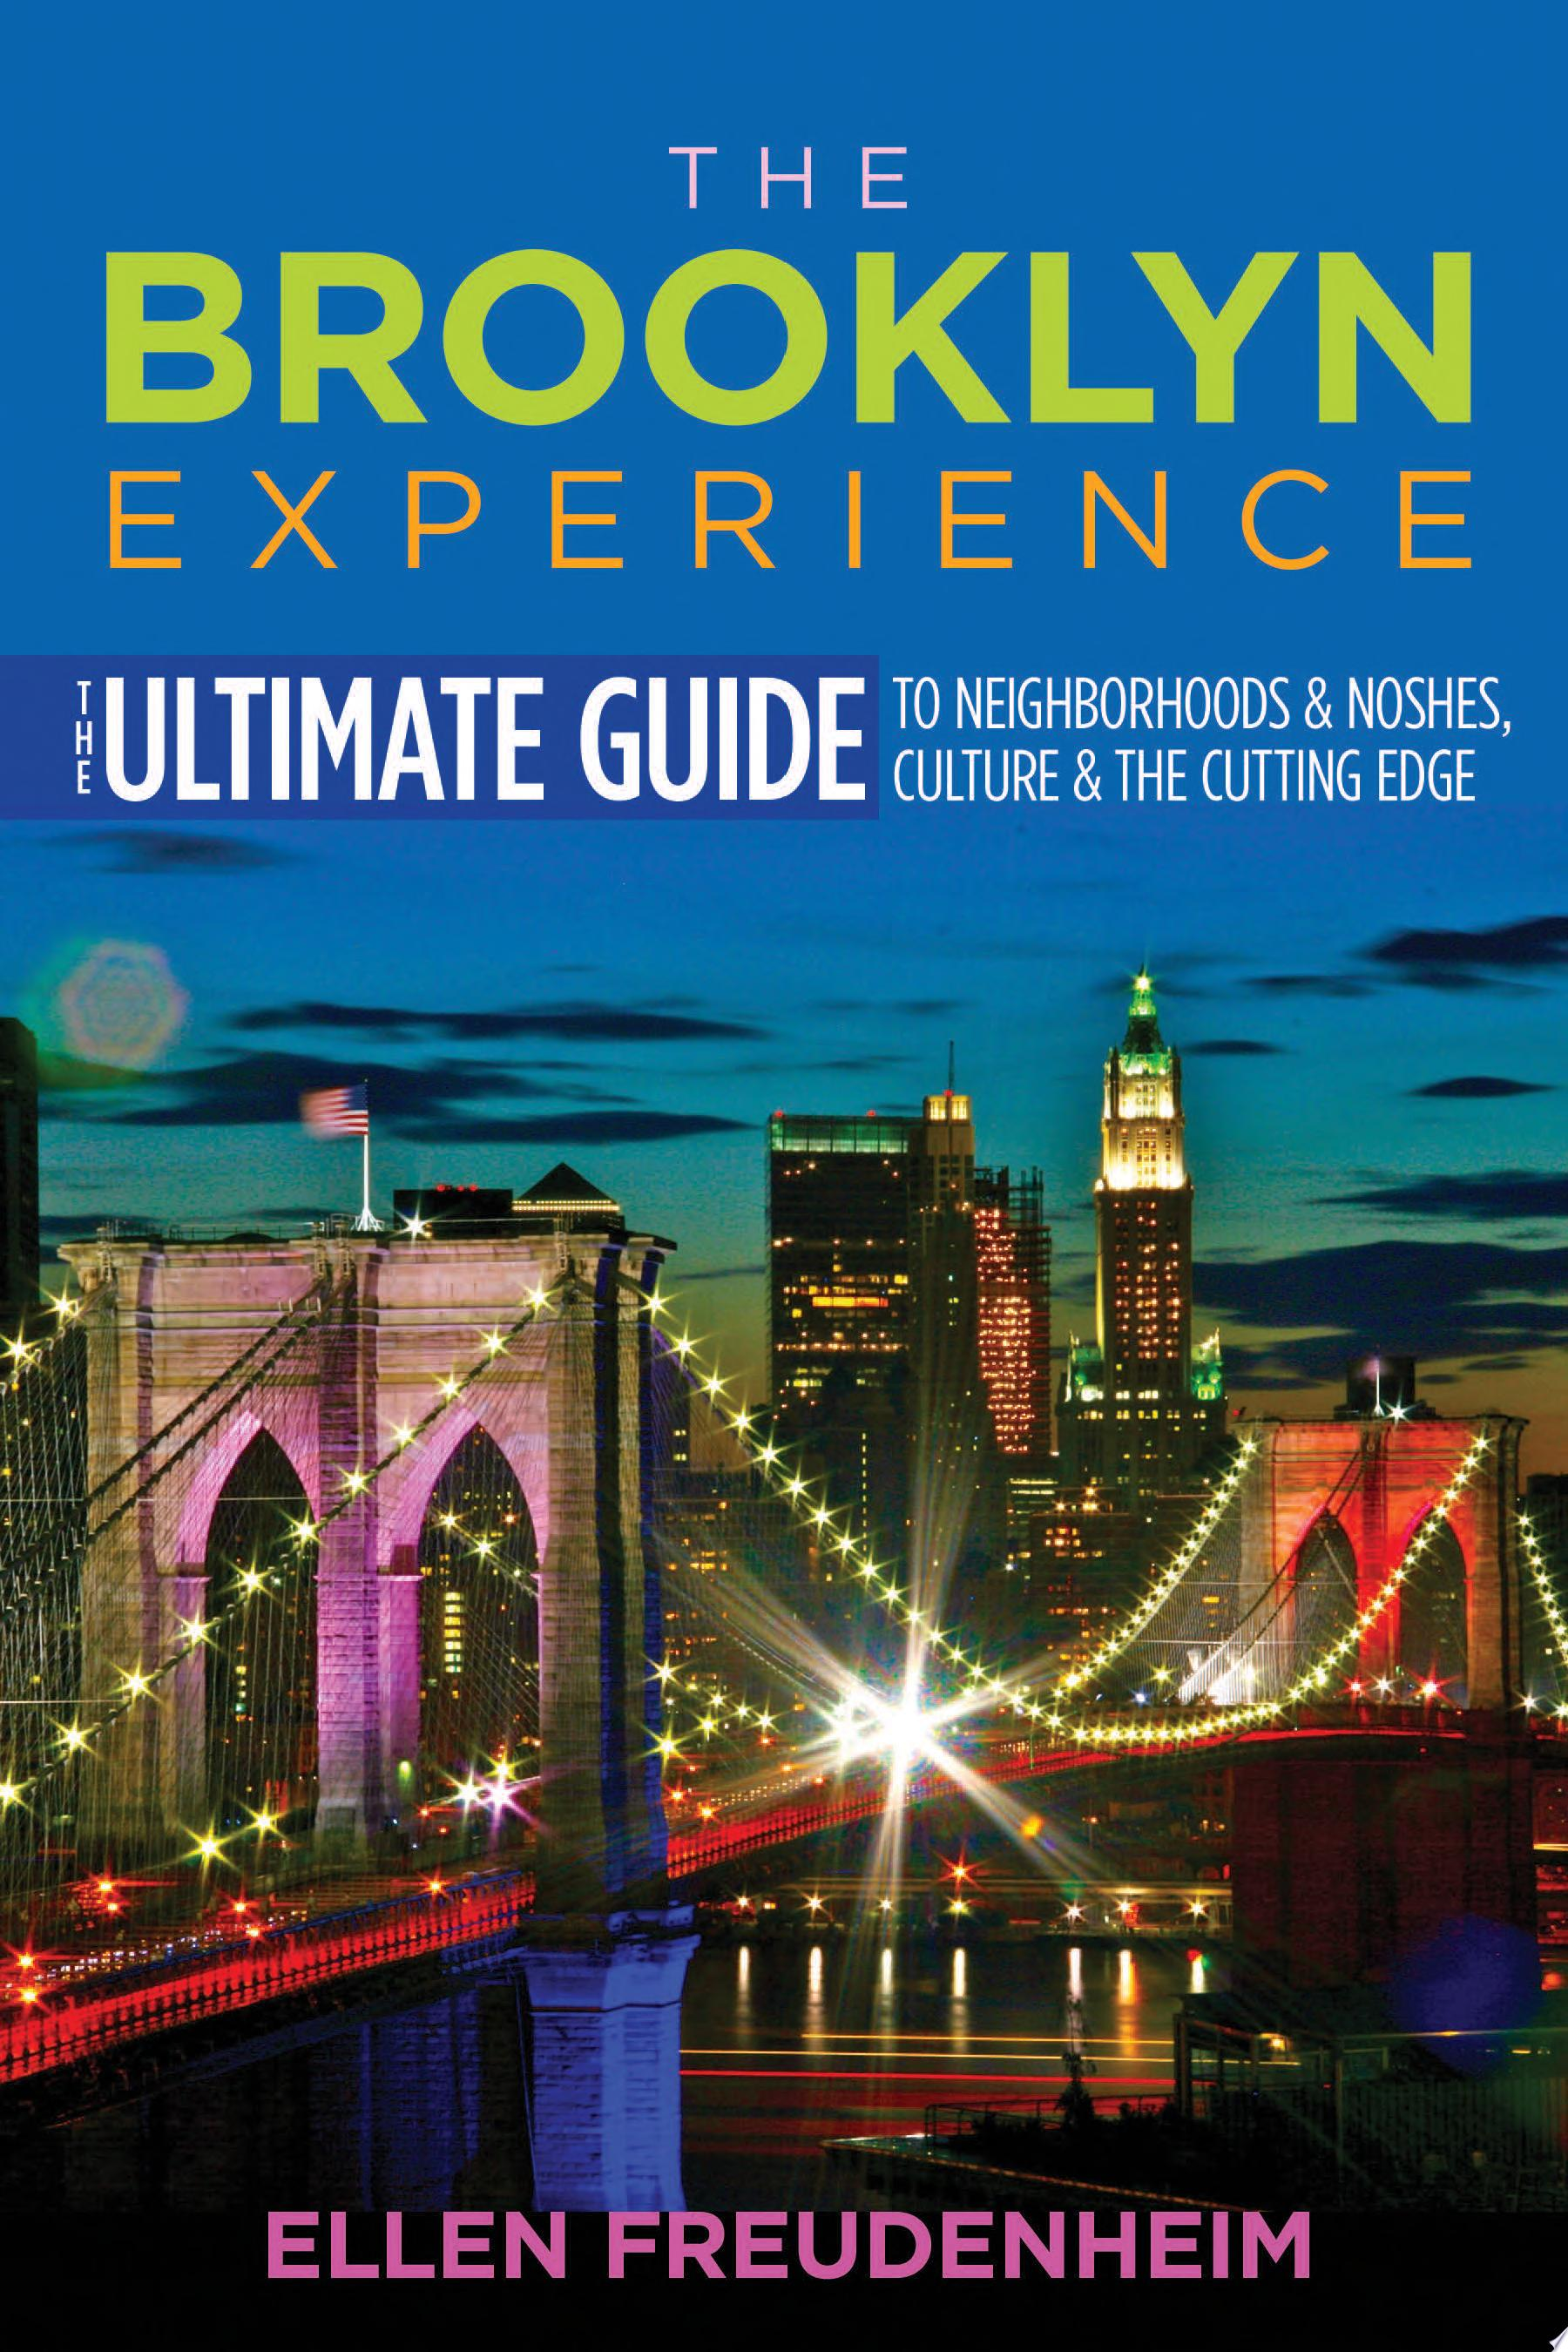 The Brooklyn Experience